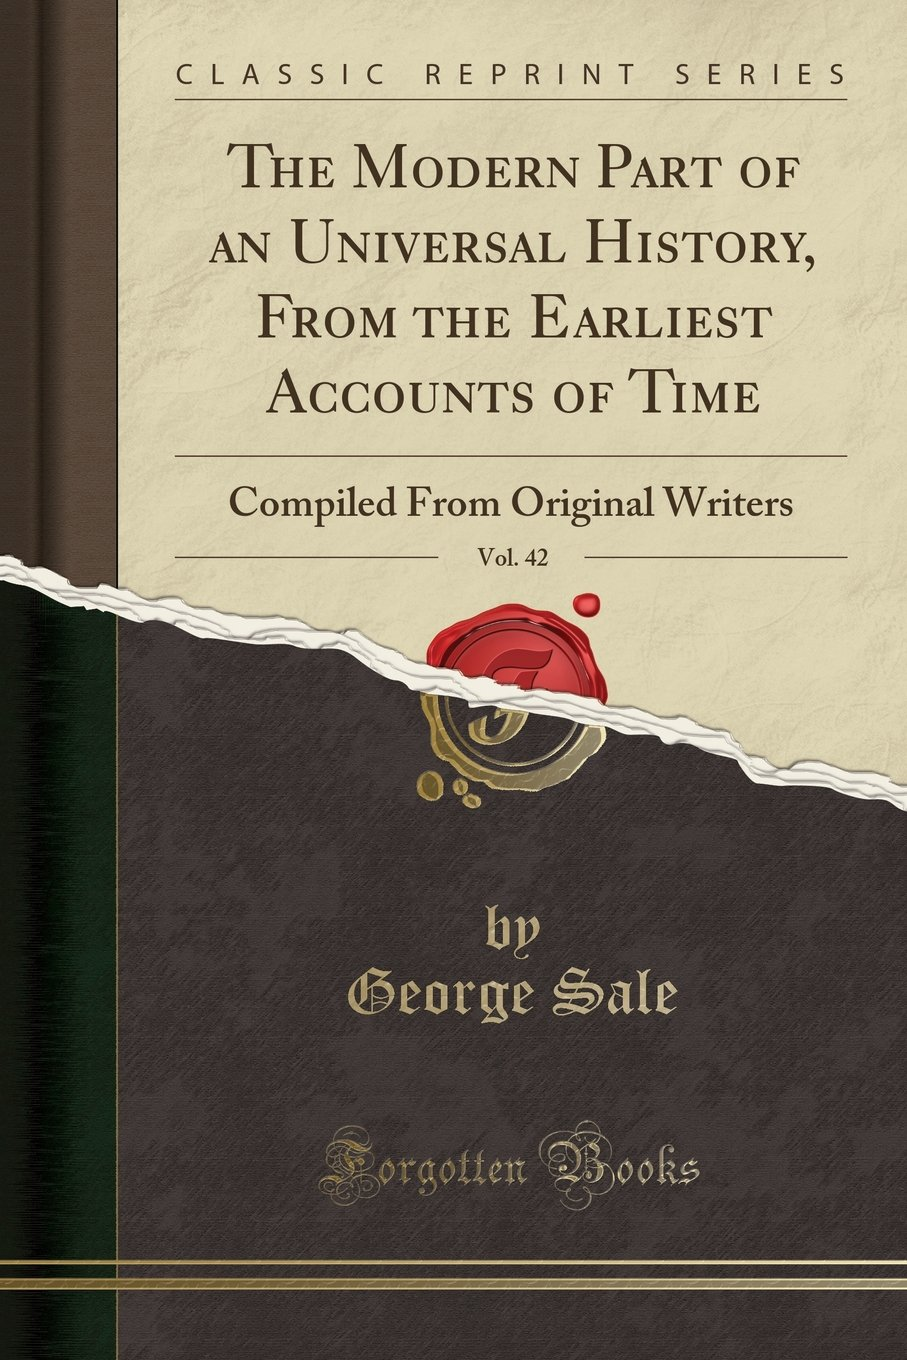 Download The Modern Part of an Universal History, From the Earliest Accounts of Time, Vol. 42: Compiled From Original Writers (Classic Reprint) pdf epub